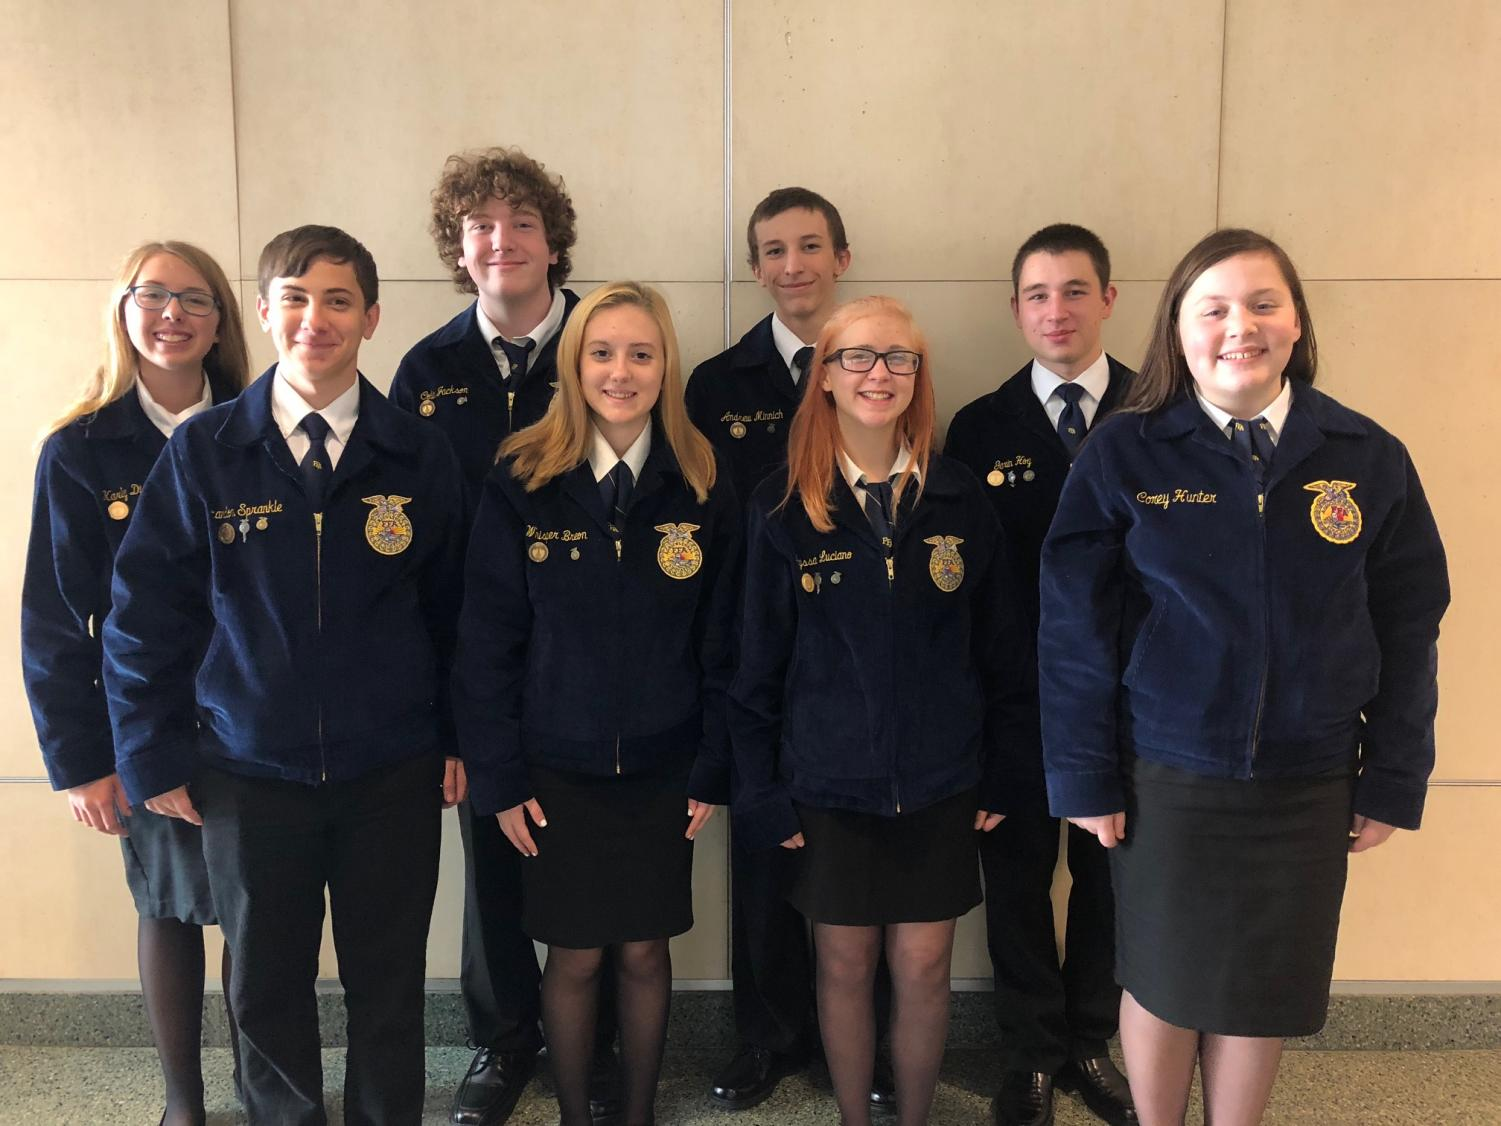 Garin Hoy, Karly Diebold, Alyssa Luciano, Grace Peterson, Brandon Sprankle, Andrew Minnich, Colin Jackson, and Whisper Breon represented the Tyrone Area FFA chapter.